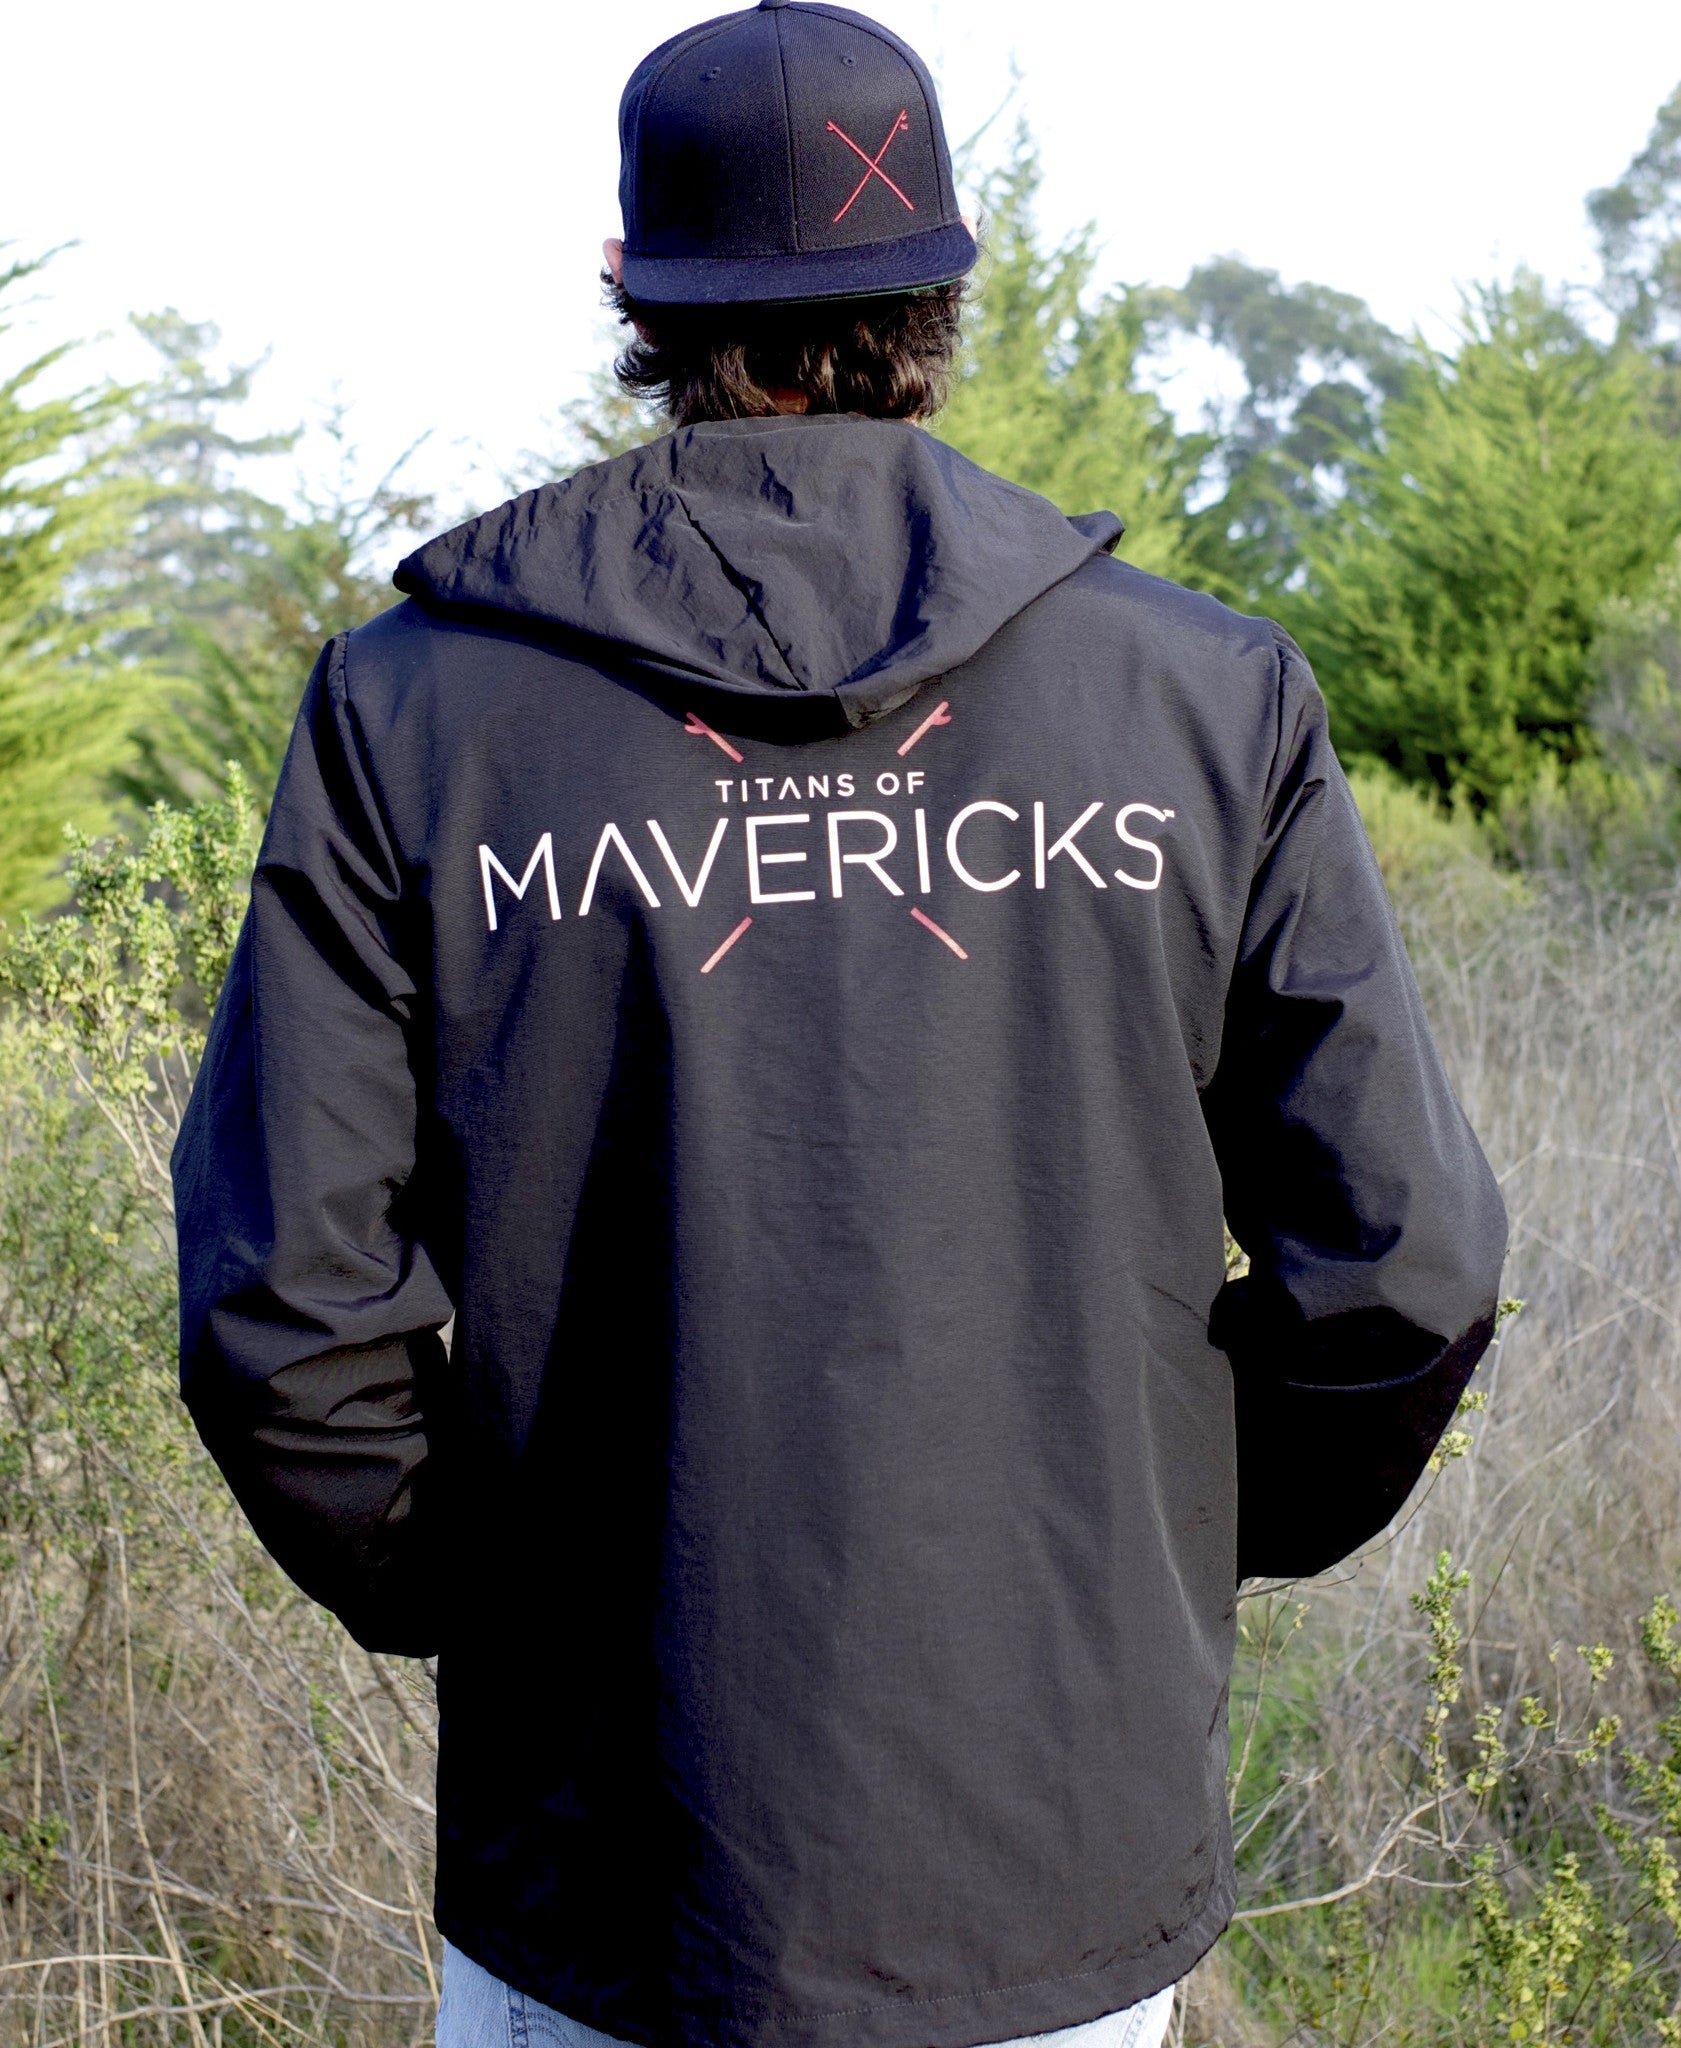 Titans of Mavericks Windbreaker Jacket